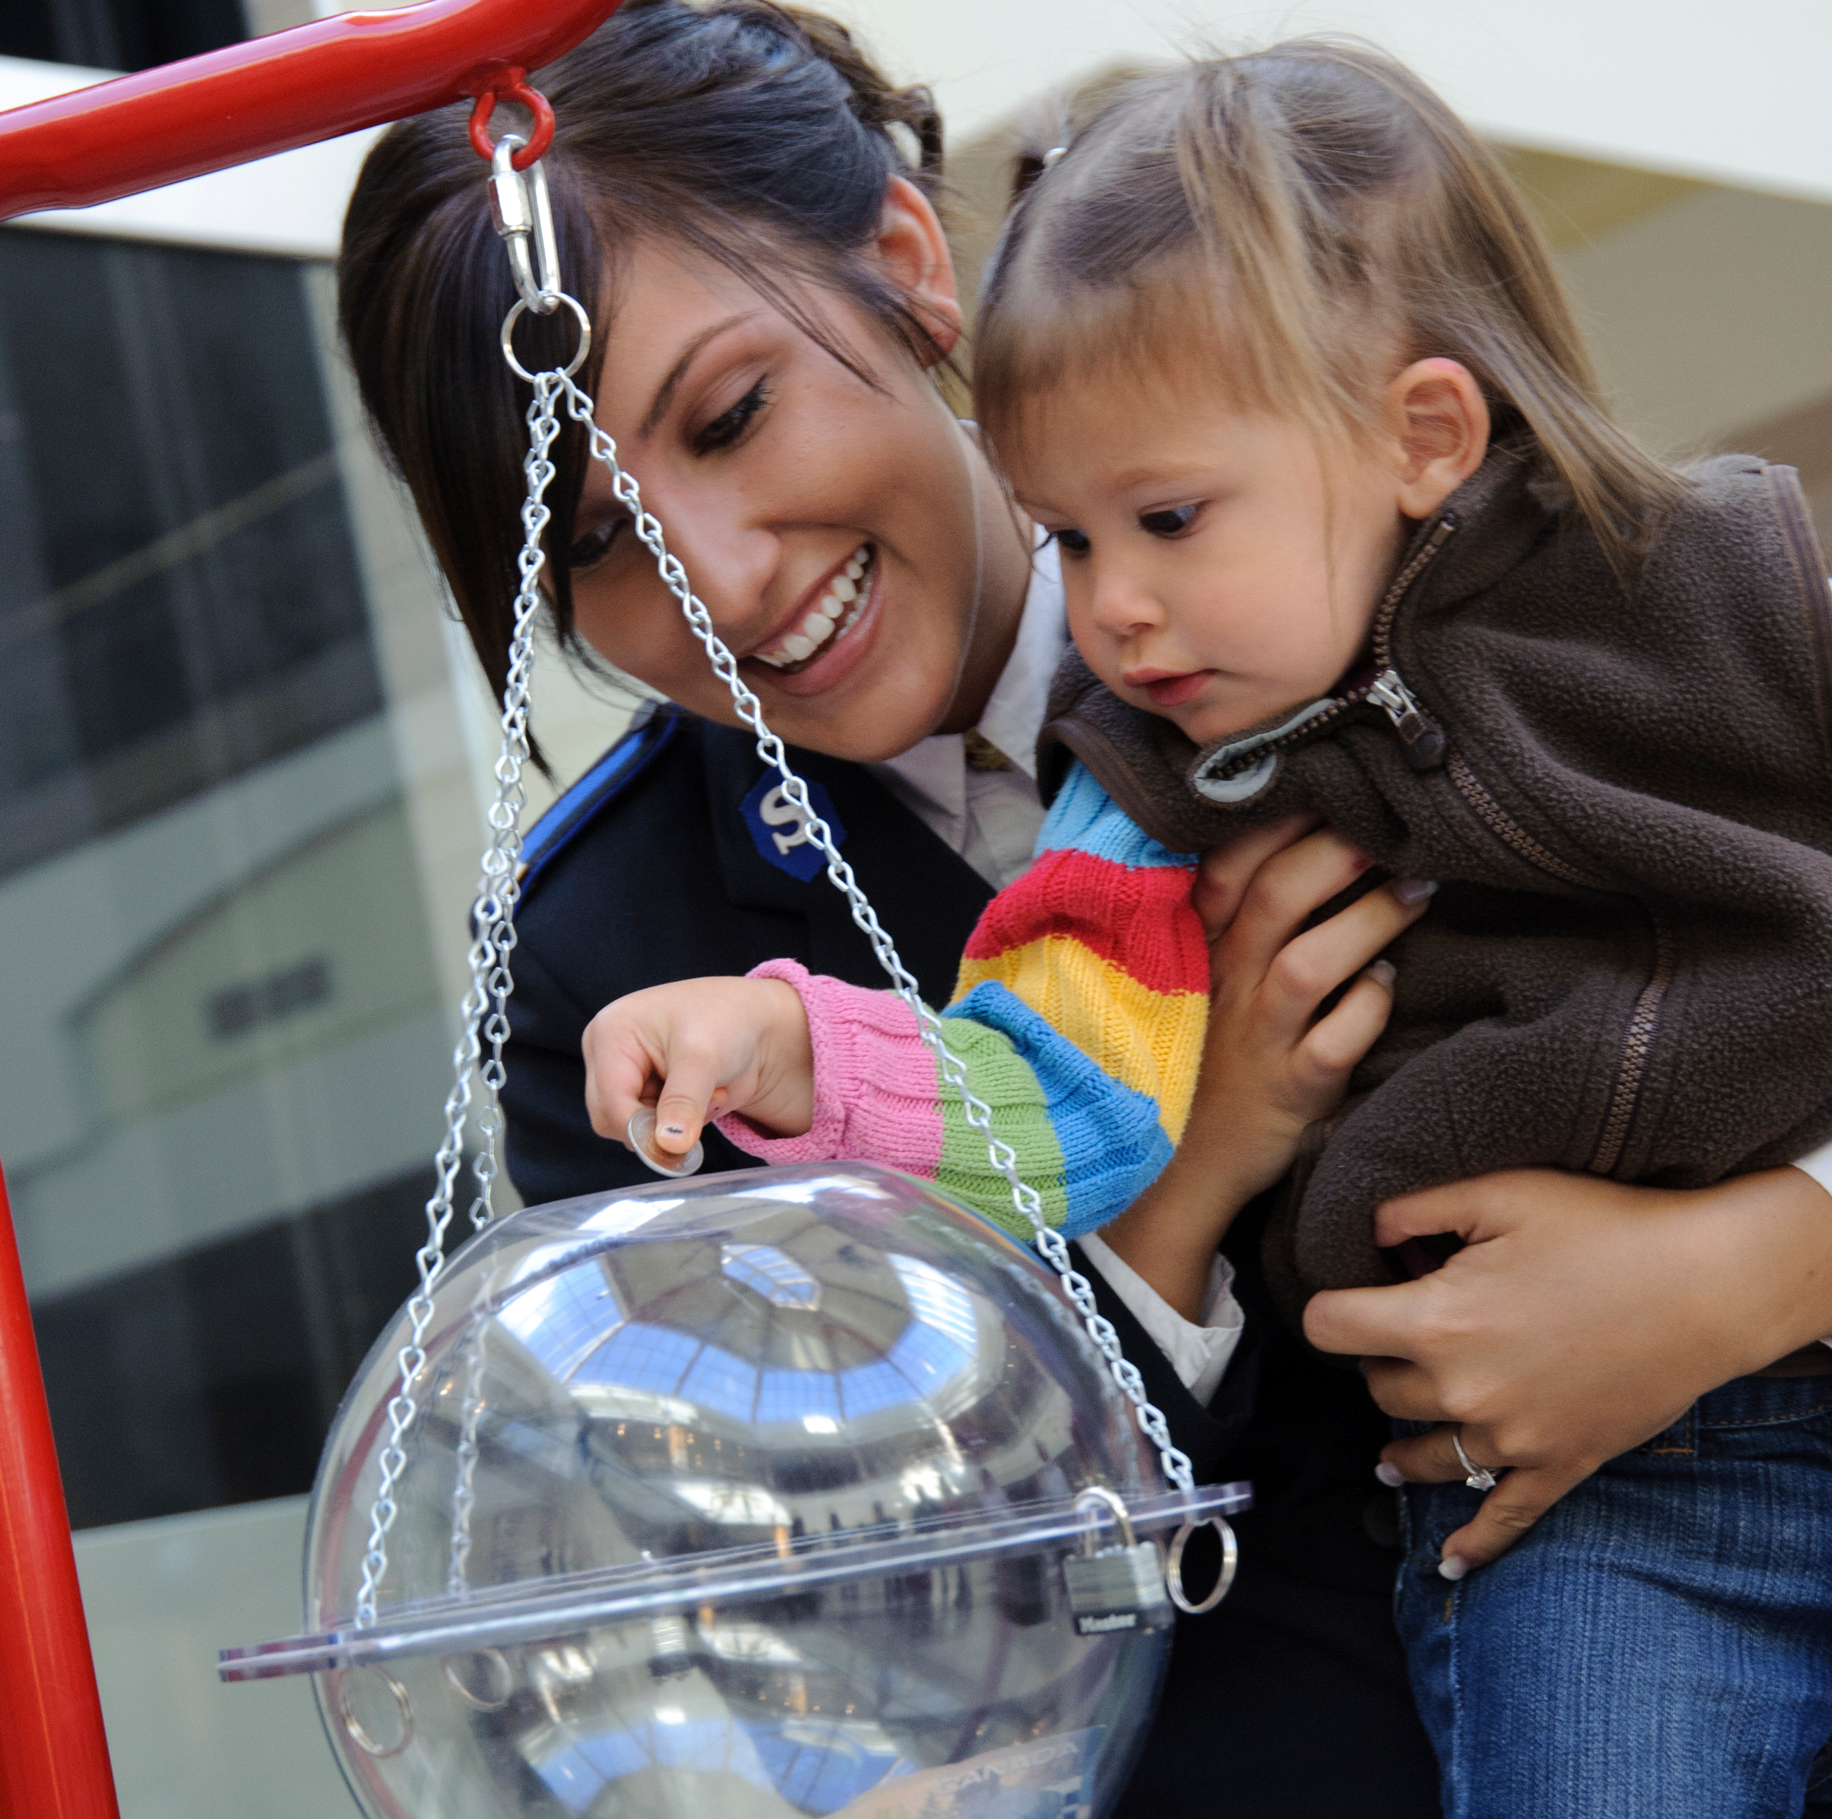 Image of woman and child putting a coin into a christmas kettle